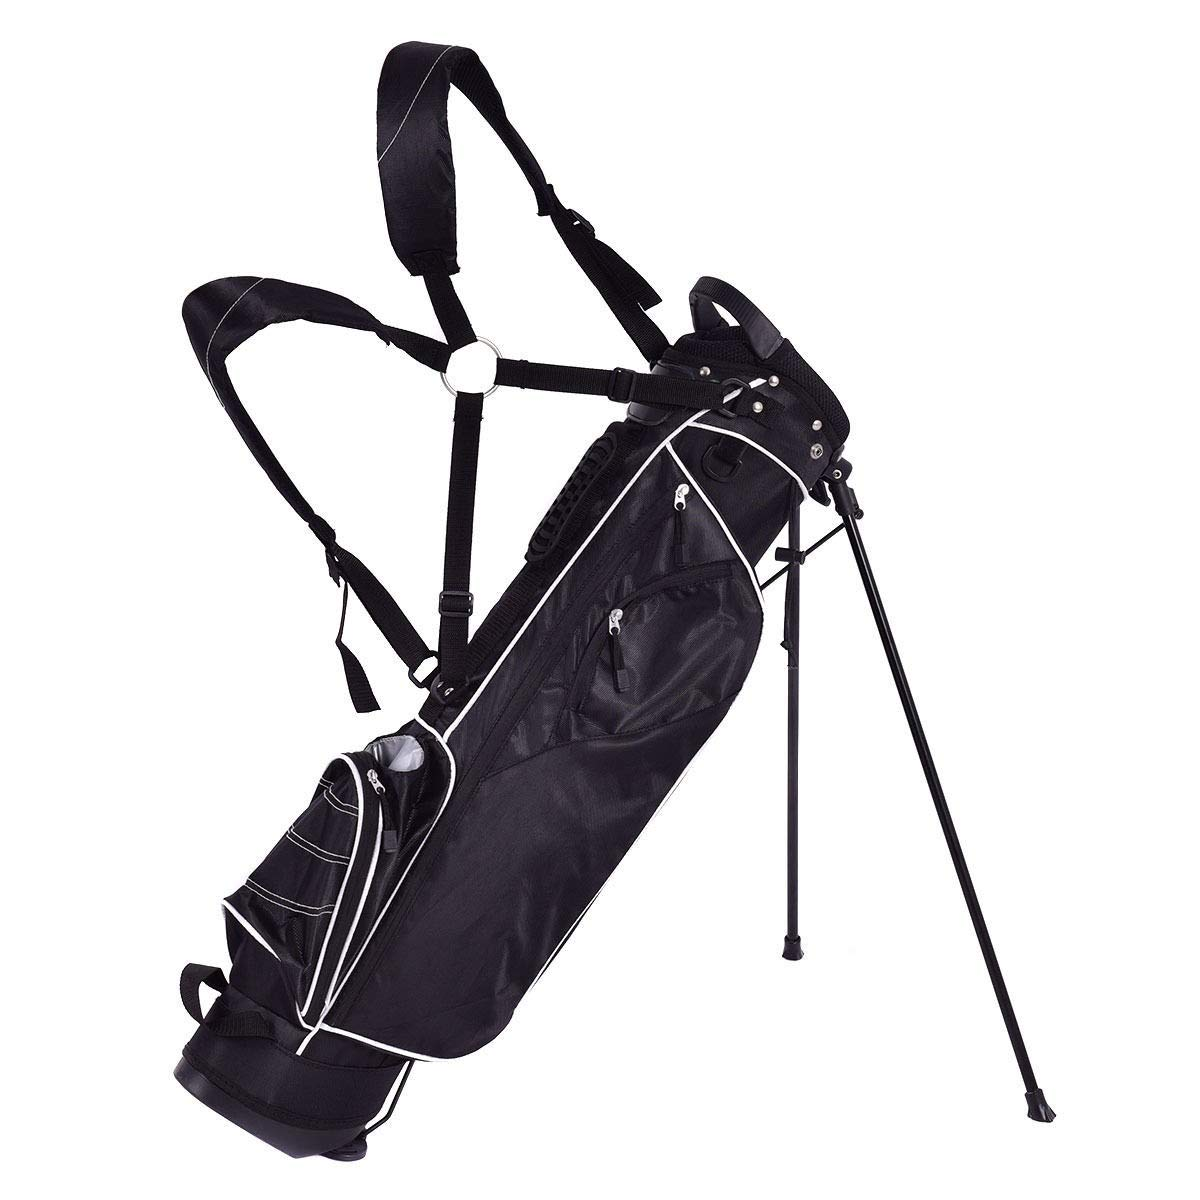 BeUniqueToday Golf Stand Cart Bag w/ 4 Way Divider Carry Organizer Pockets, Ergonomically Designed Golf Stand Cart Bag, Golf Stand Cart Bag with Durable Automatic Stand with Anti-Slip Foot Pads